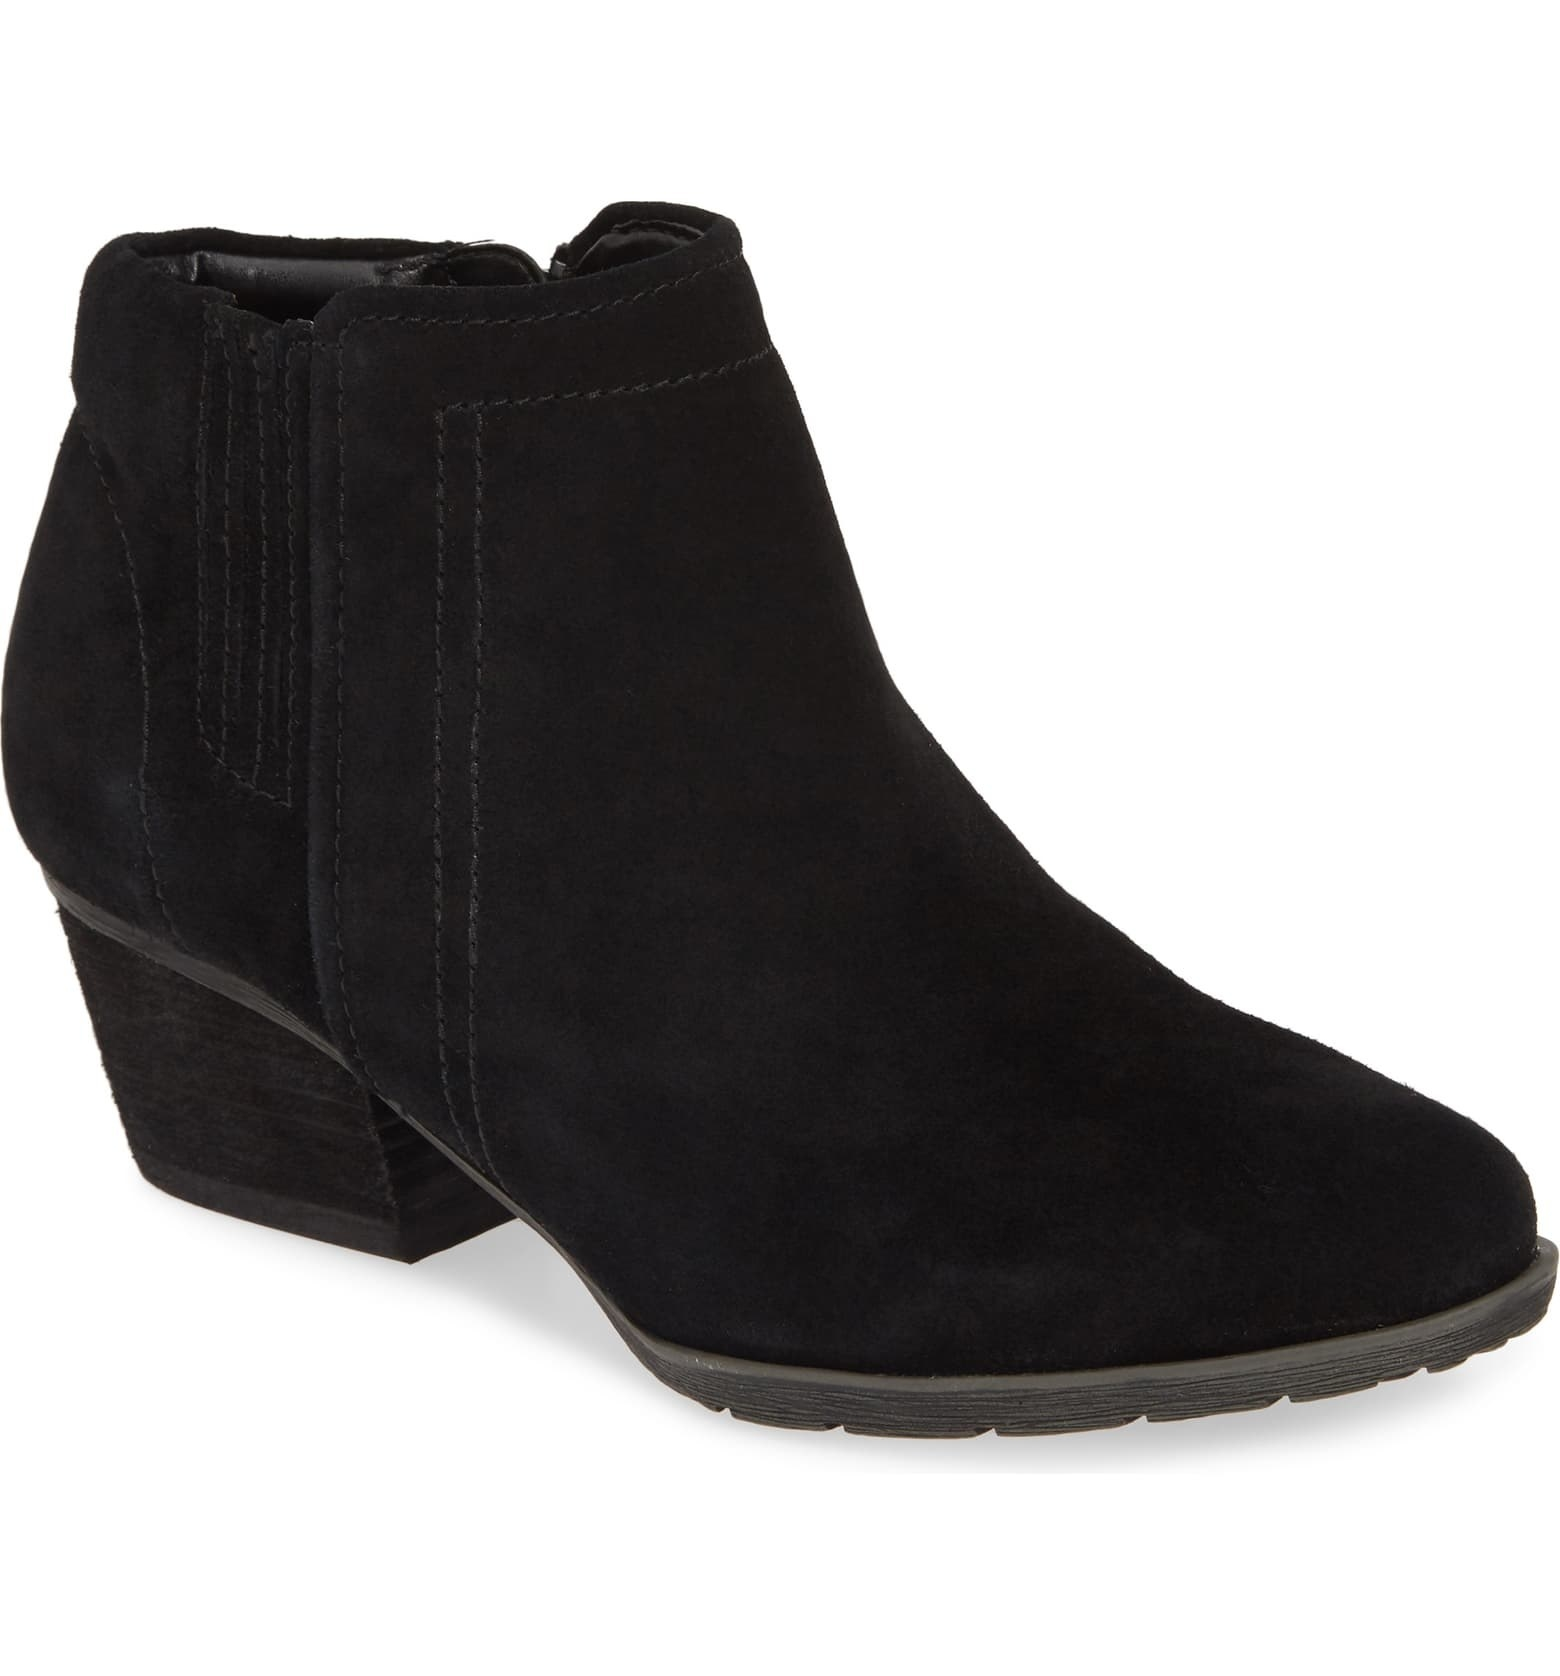 The black suede boots with a western-style stacked low heel